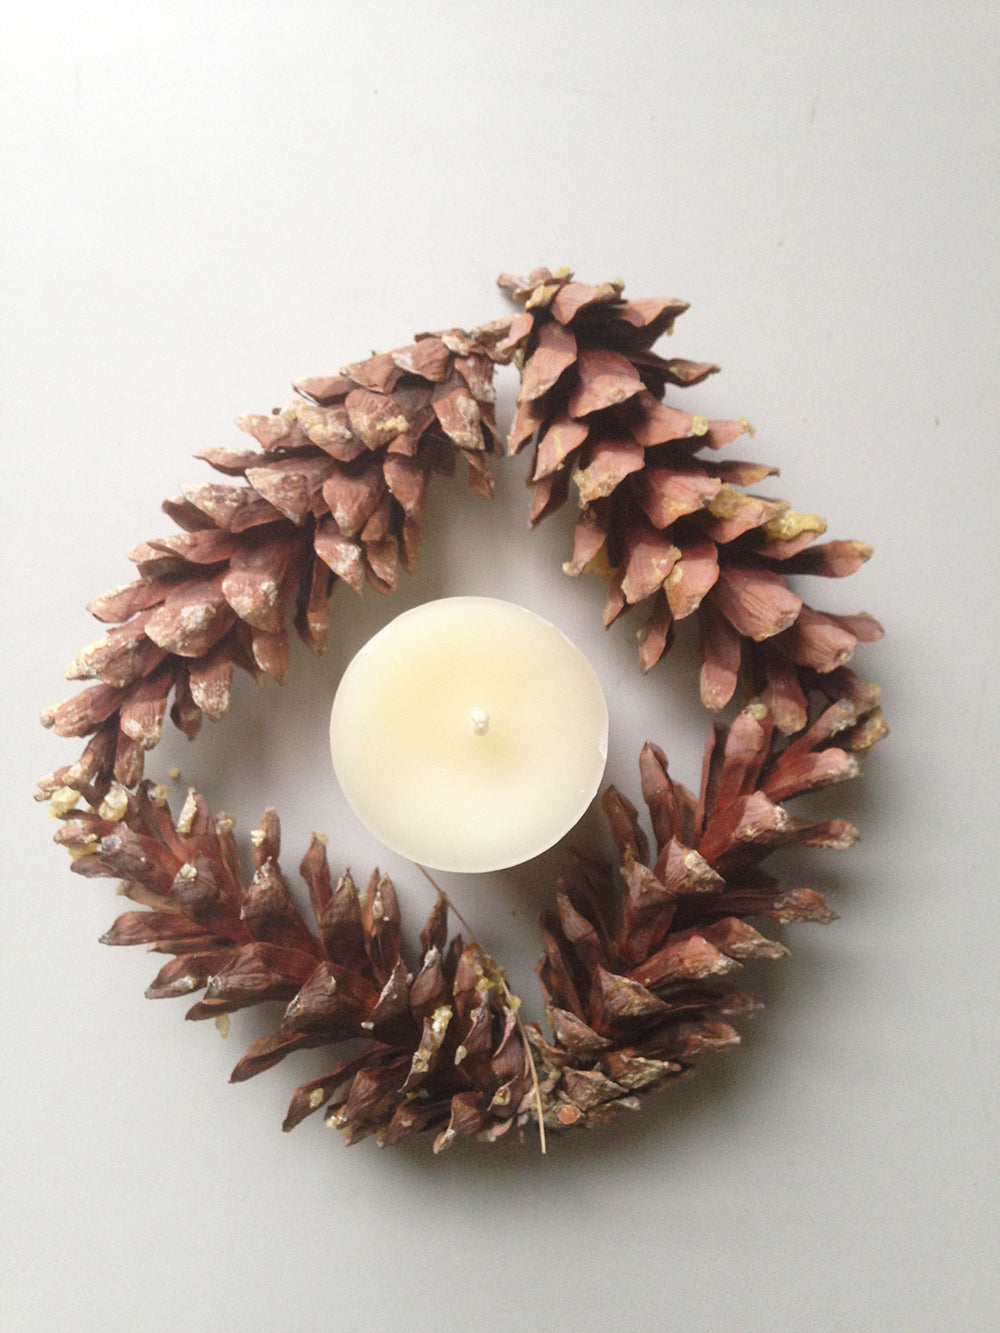 single beeswax votive candle surrounded by pinecones in circle